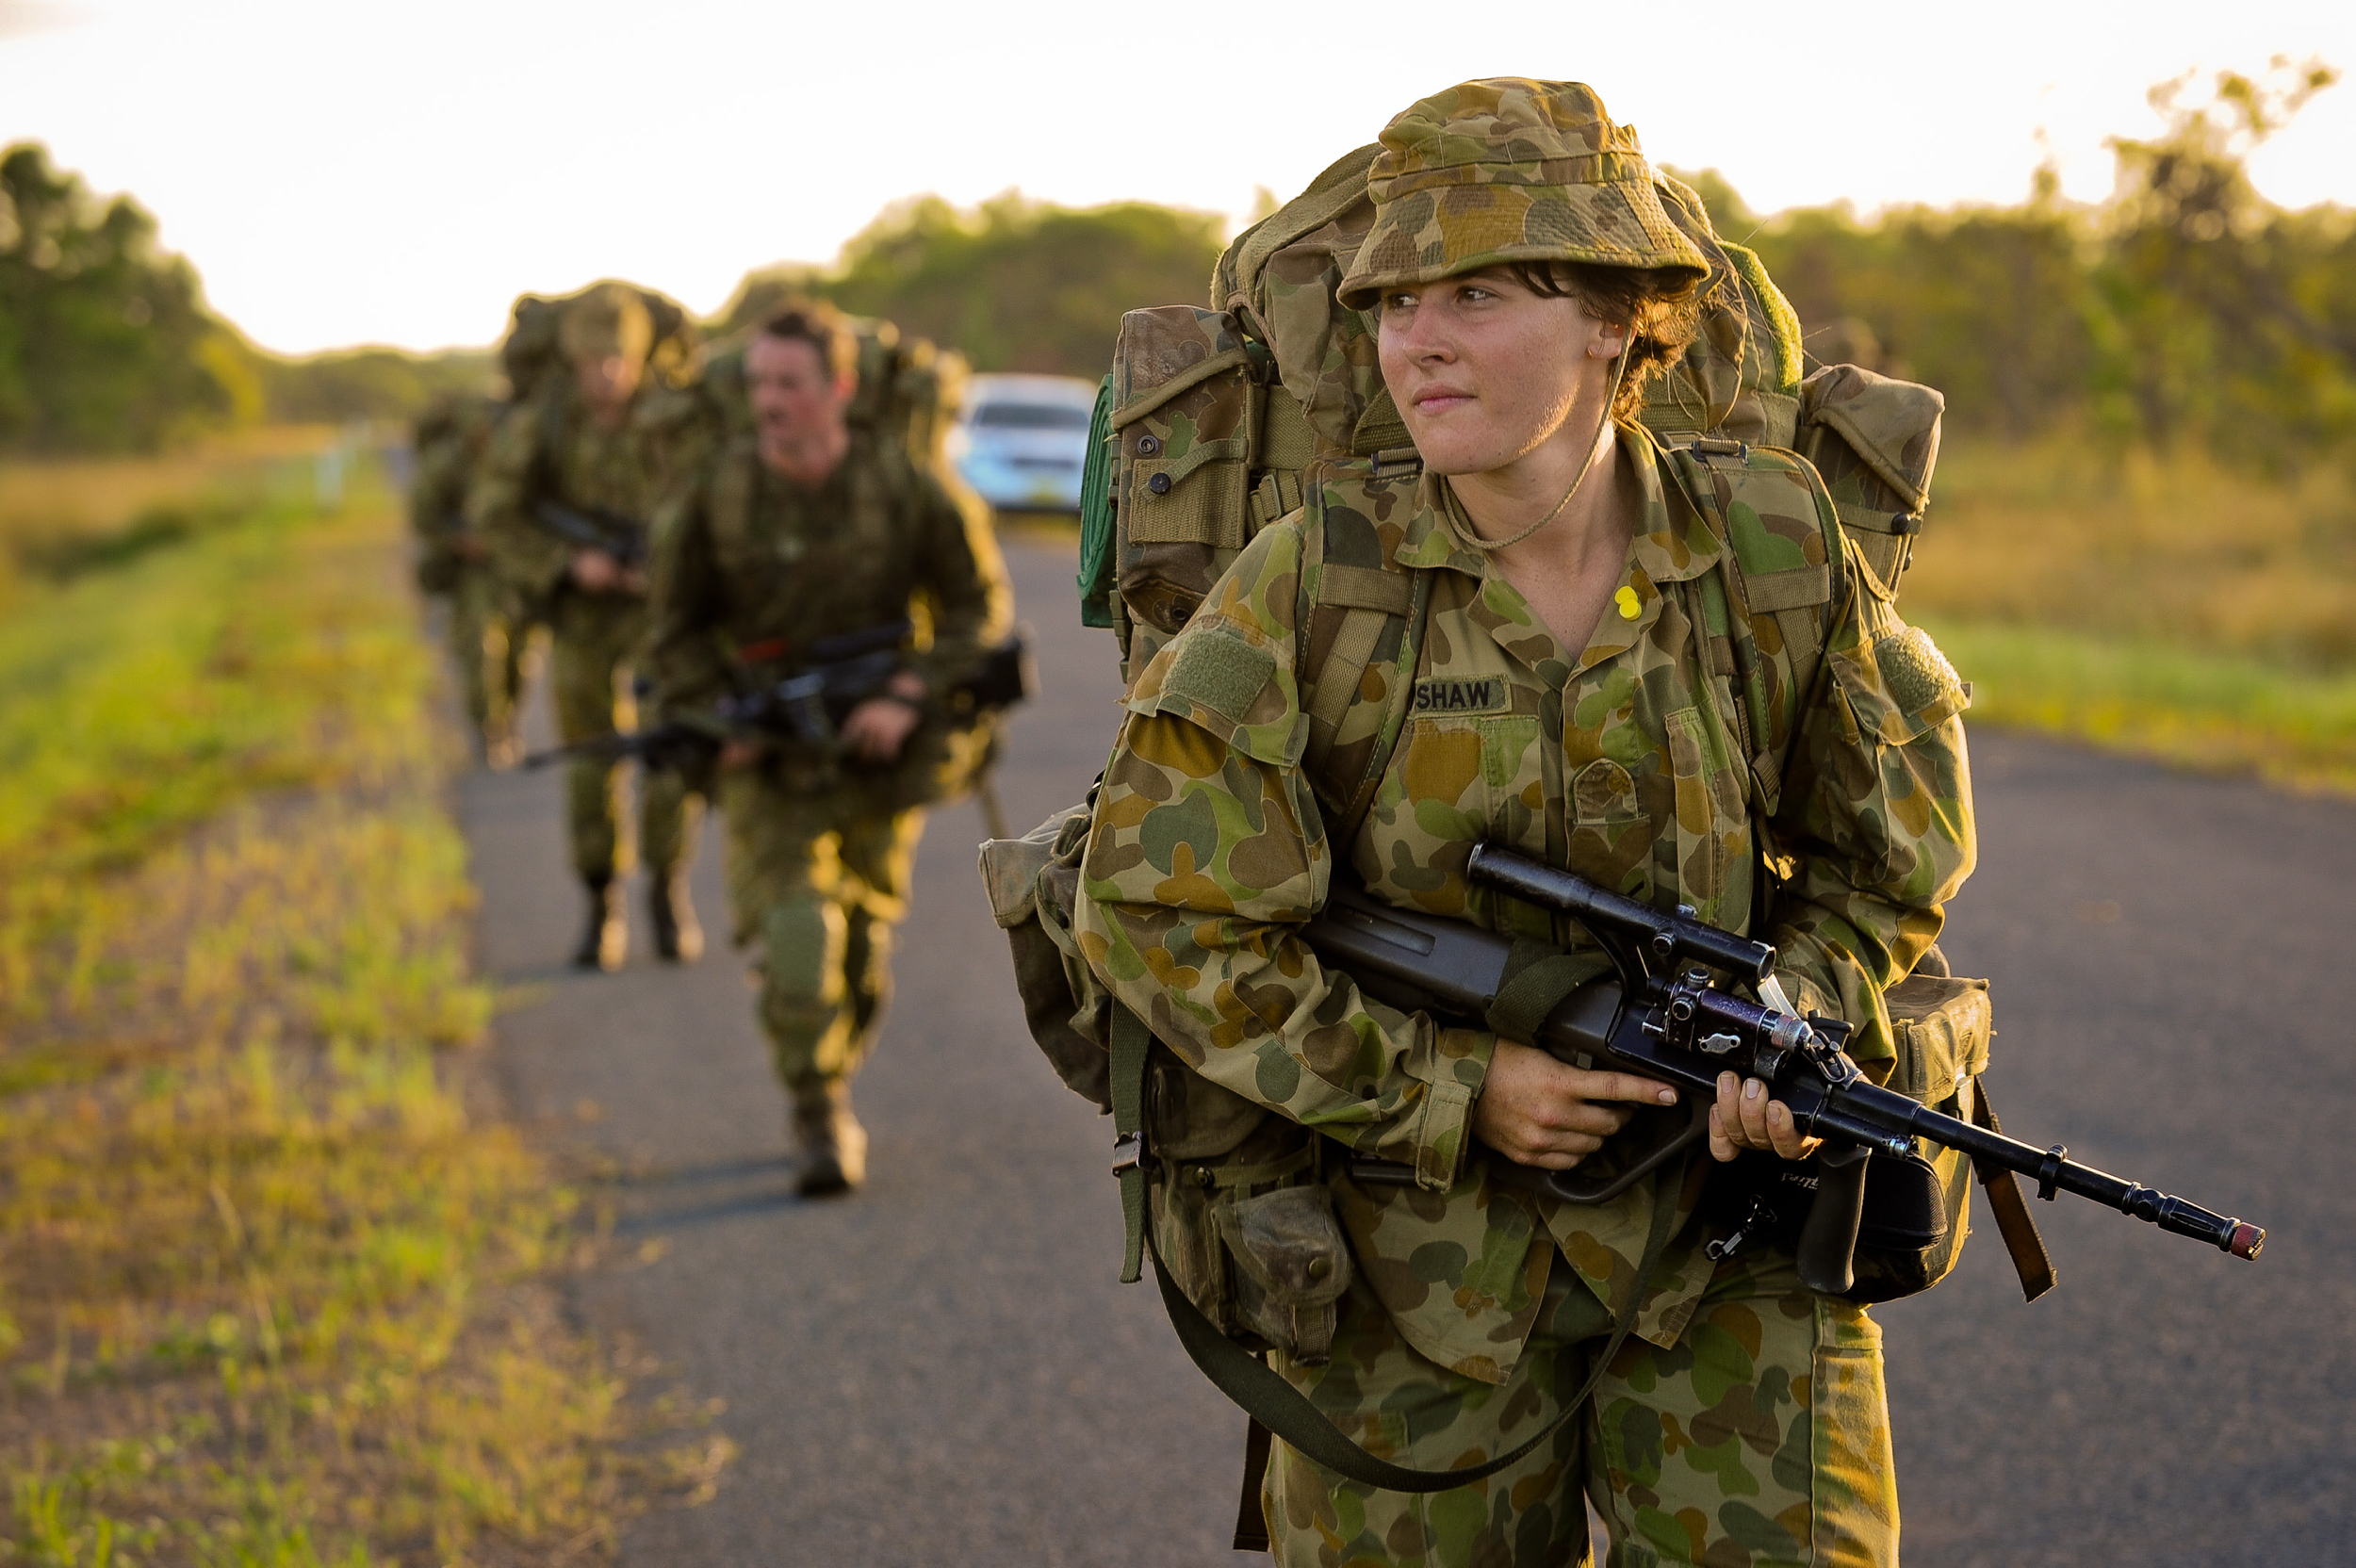 an analysis of women being allowed to fight in combat missions A nation that sends its women into front-line combat, into close infantry, hand-to-hand fighting and killing, is a nation that either doesn't take combat seriously or doesn't take respect for.